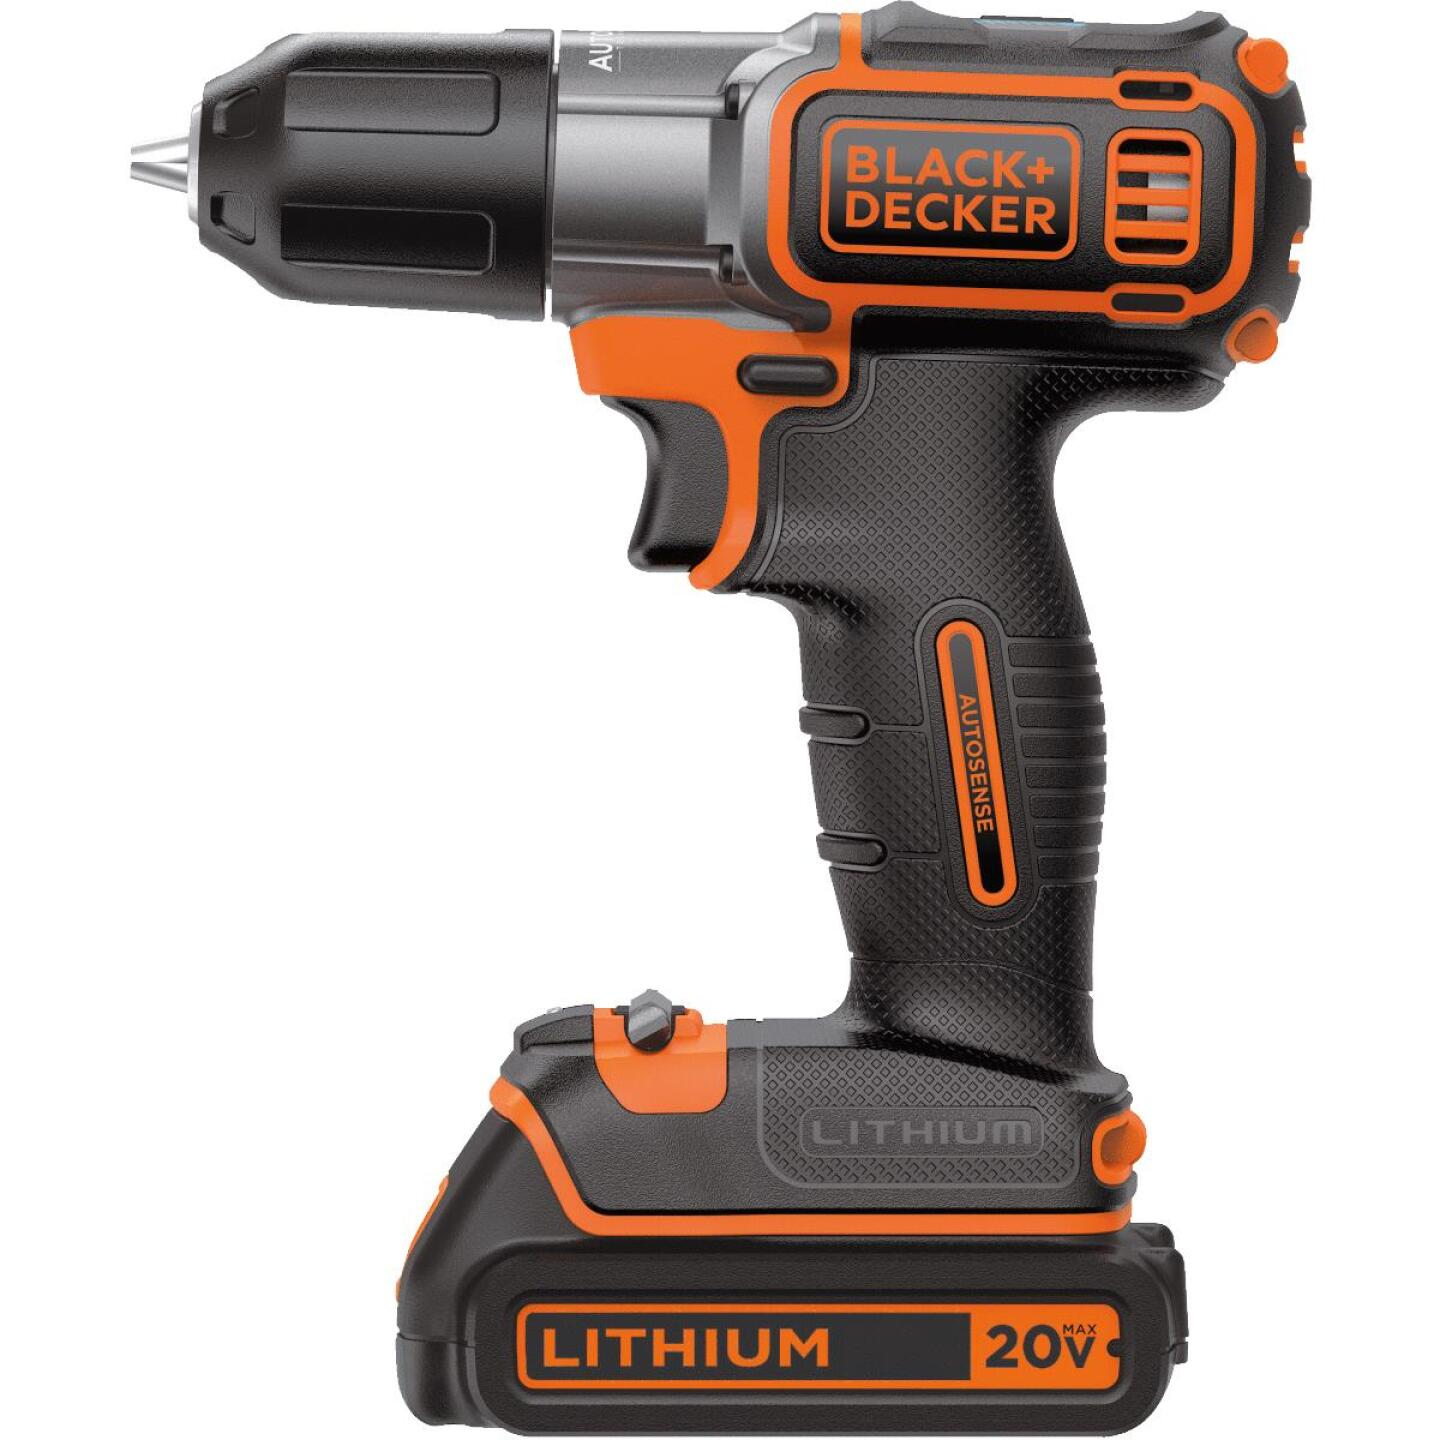 Black & Decker 20 Volt MAX Lithium-Ion 3/8 In. Cordless Drill Kit with AutoSense Technology Image 2